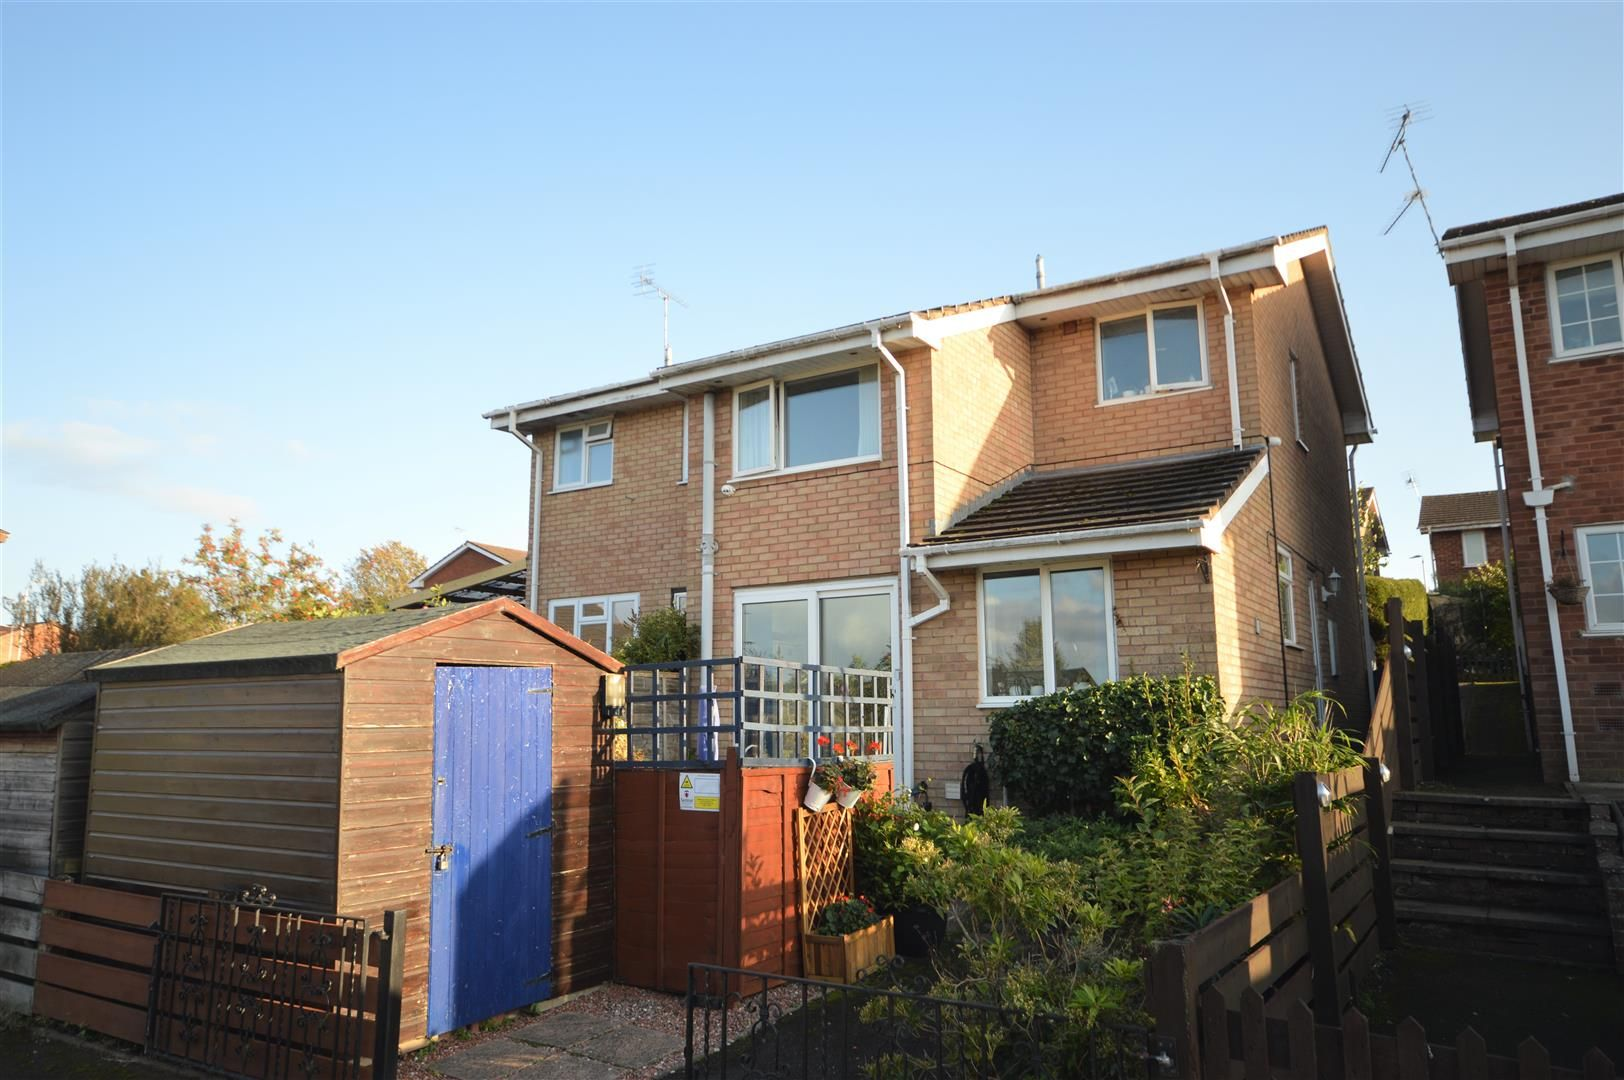 3 bed semi-detached for sale in Leominster 9